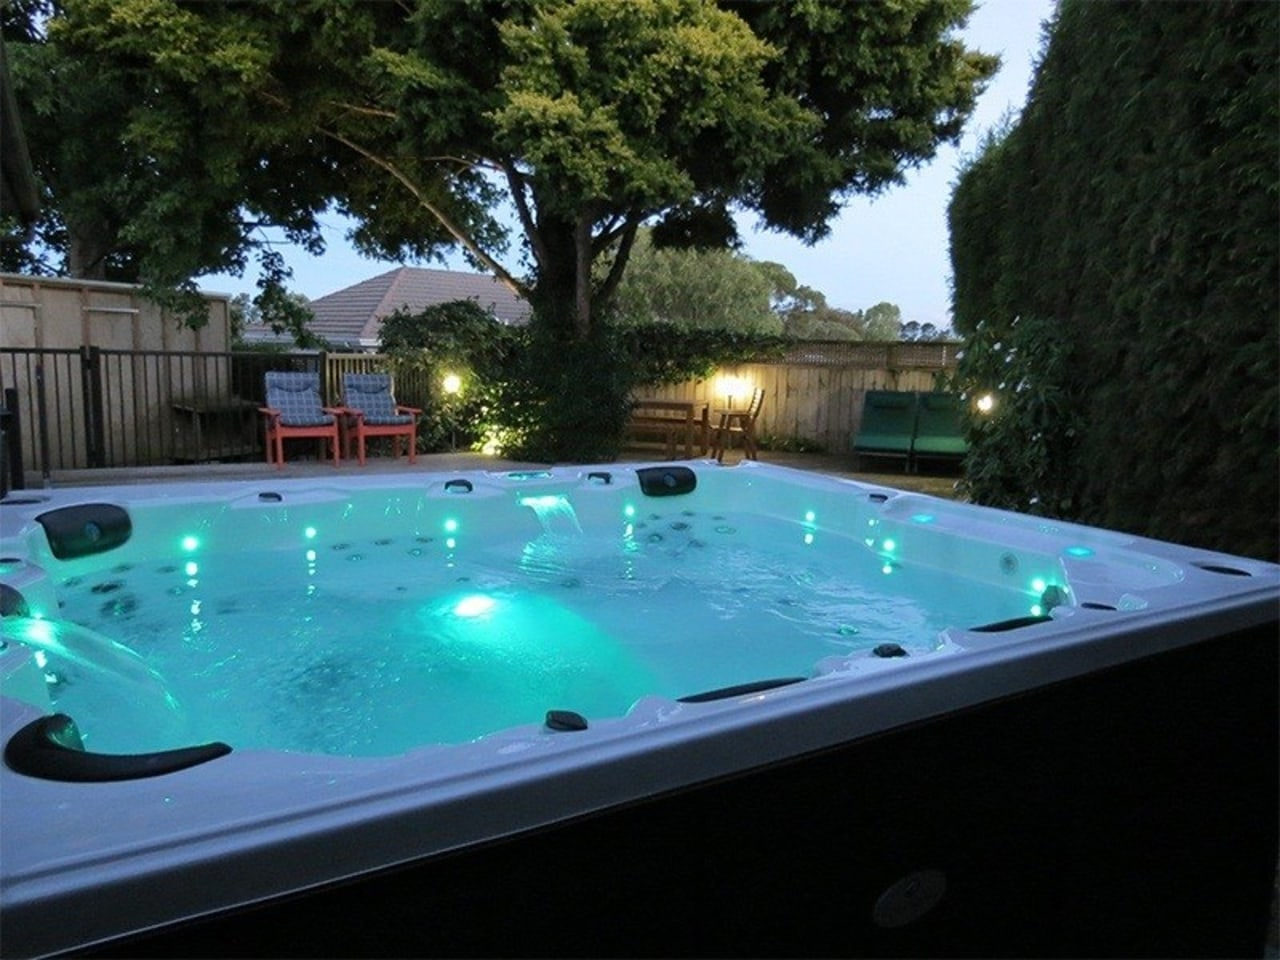 See more from Alpine Spas leisure, lighting, property, swimming pool, water, black